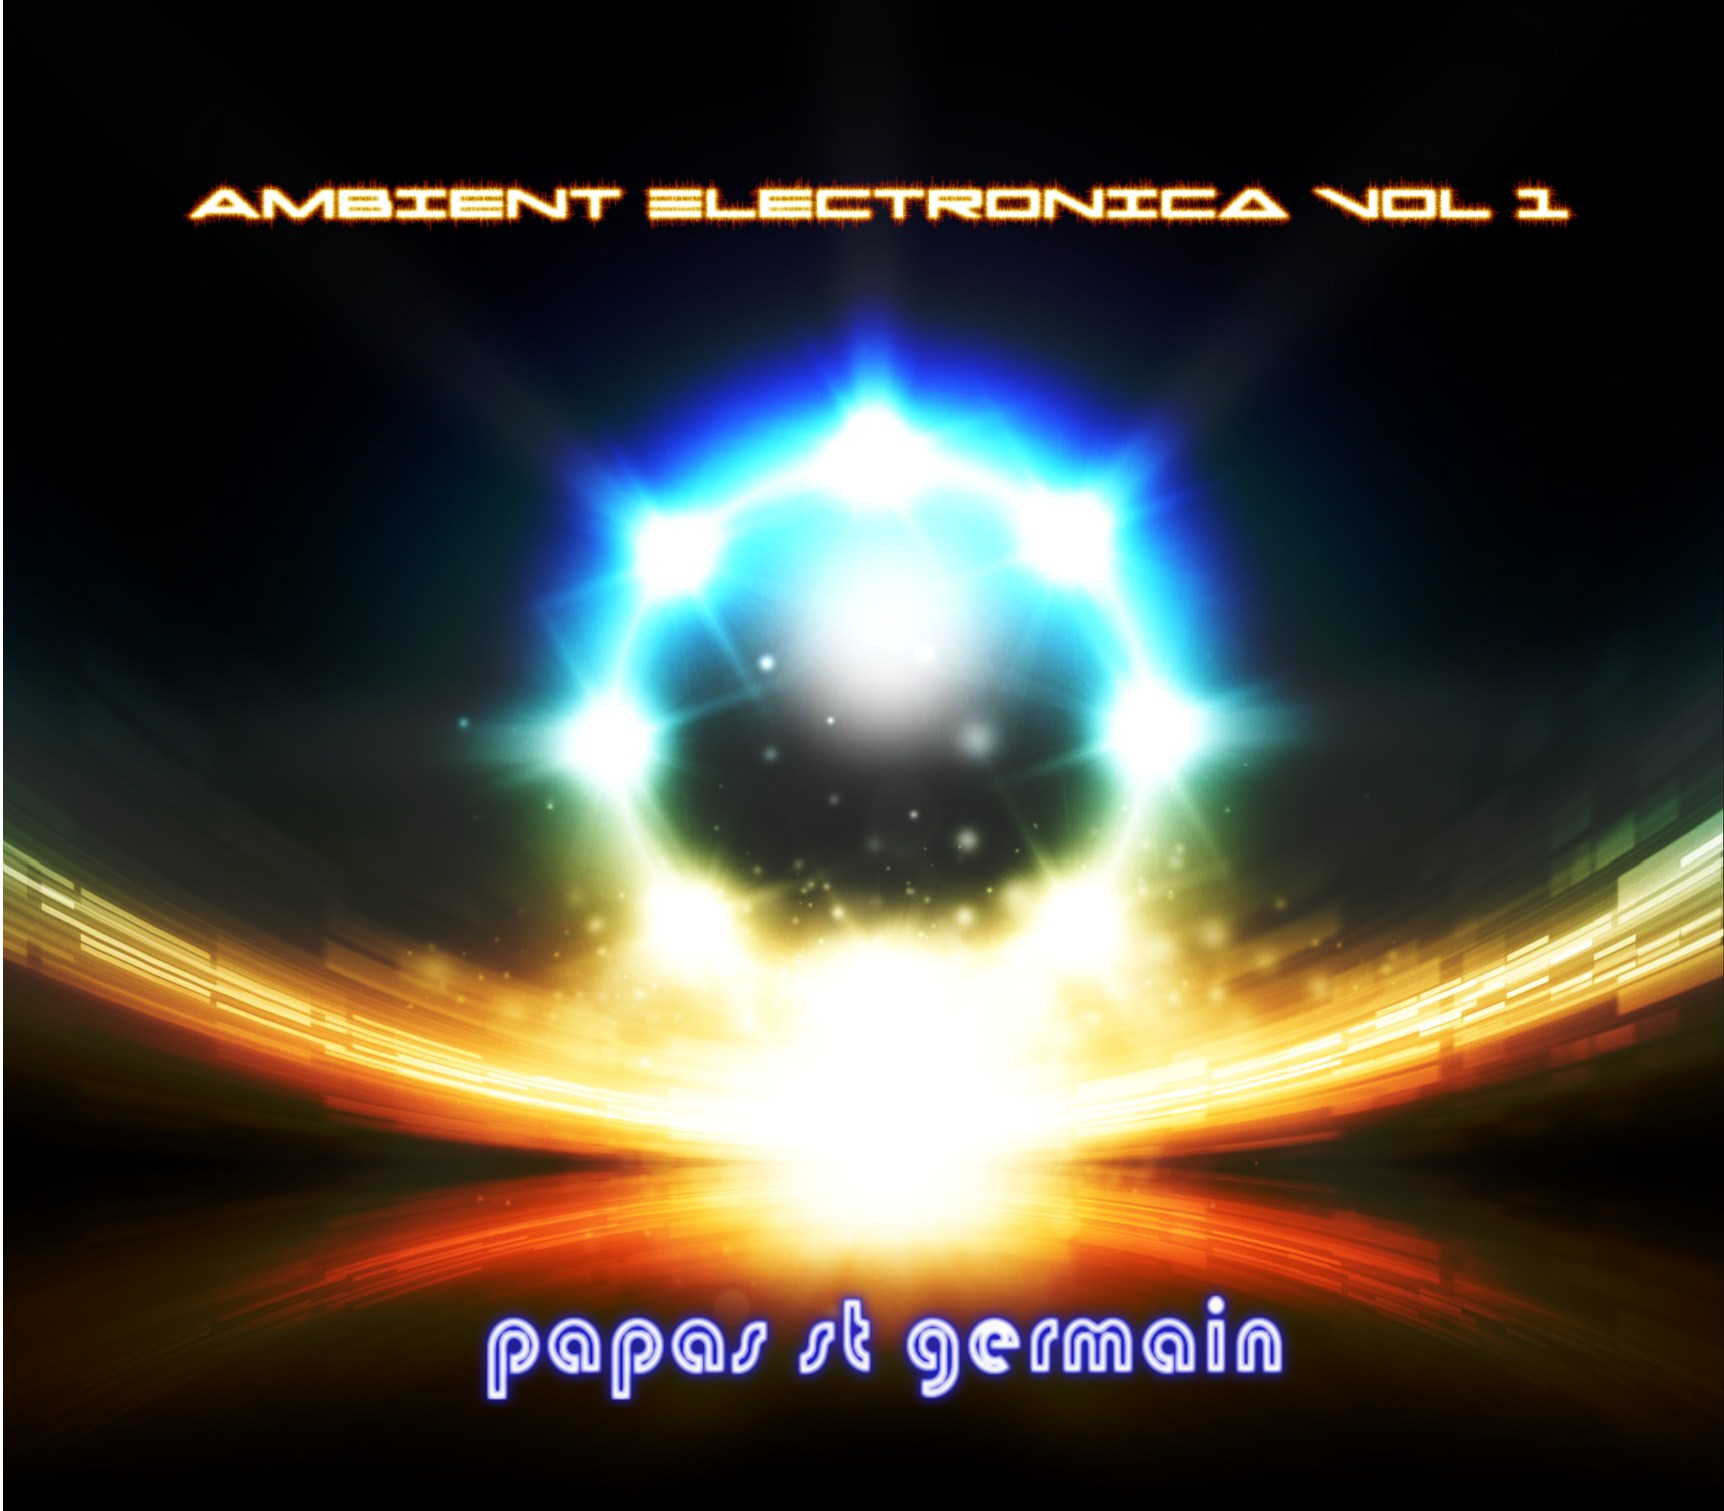 Ambient electronica vol 1 proper.jpg